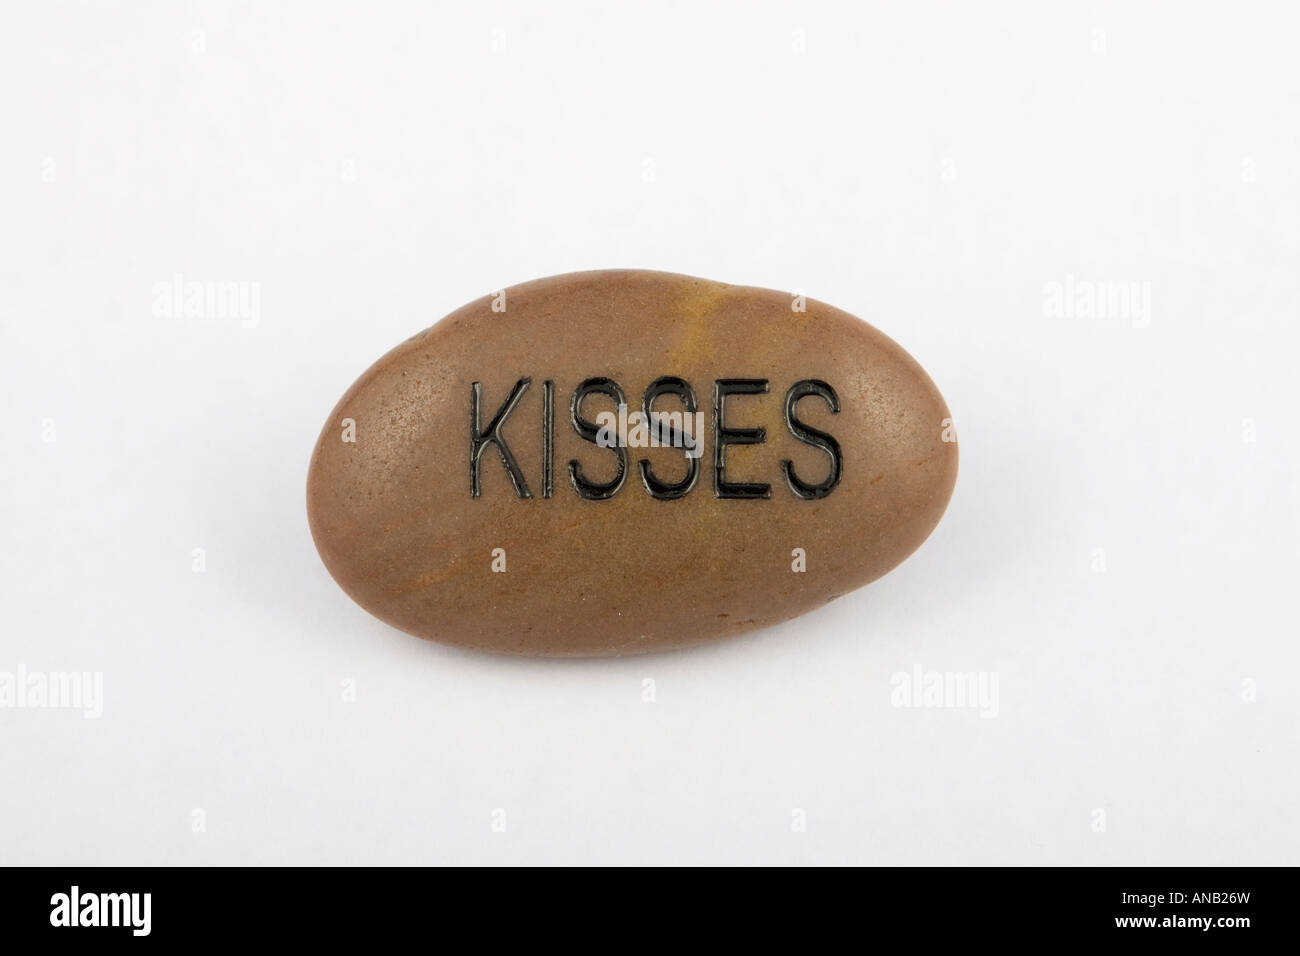 Word on stone: Kisses - Stock Image